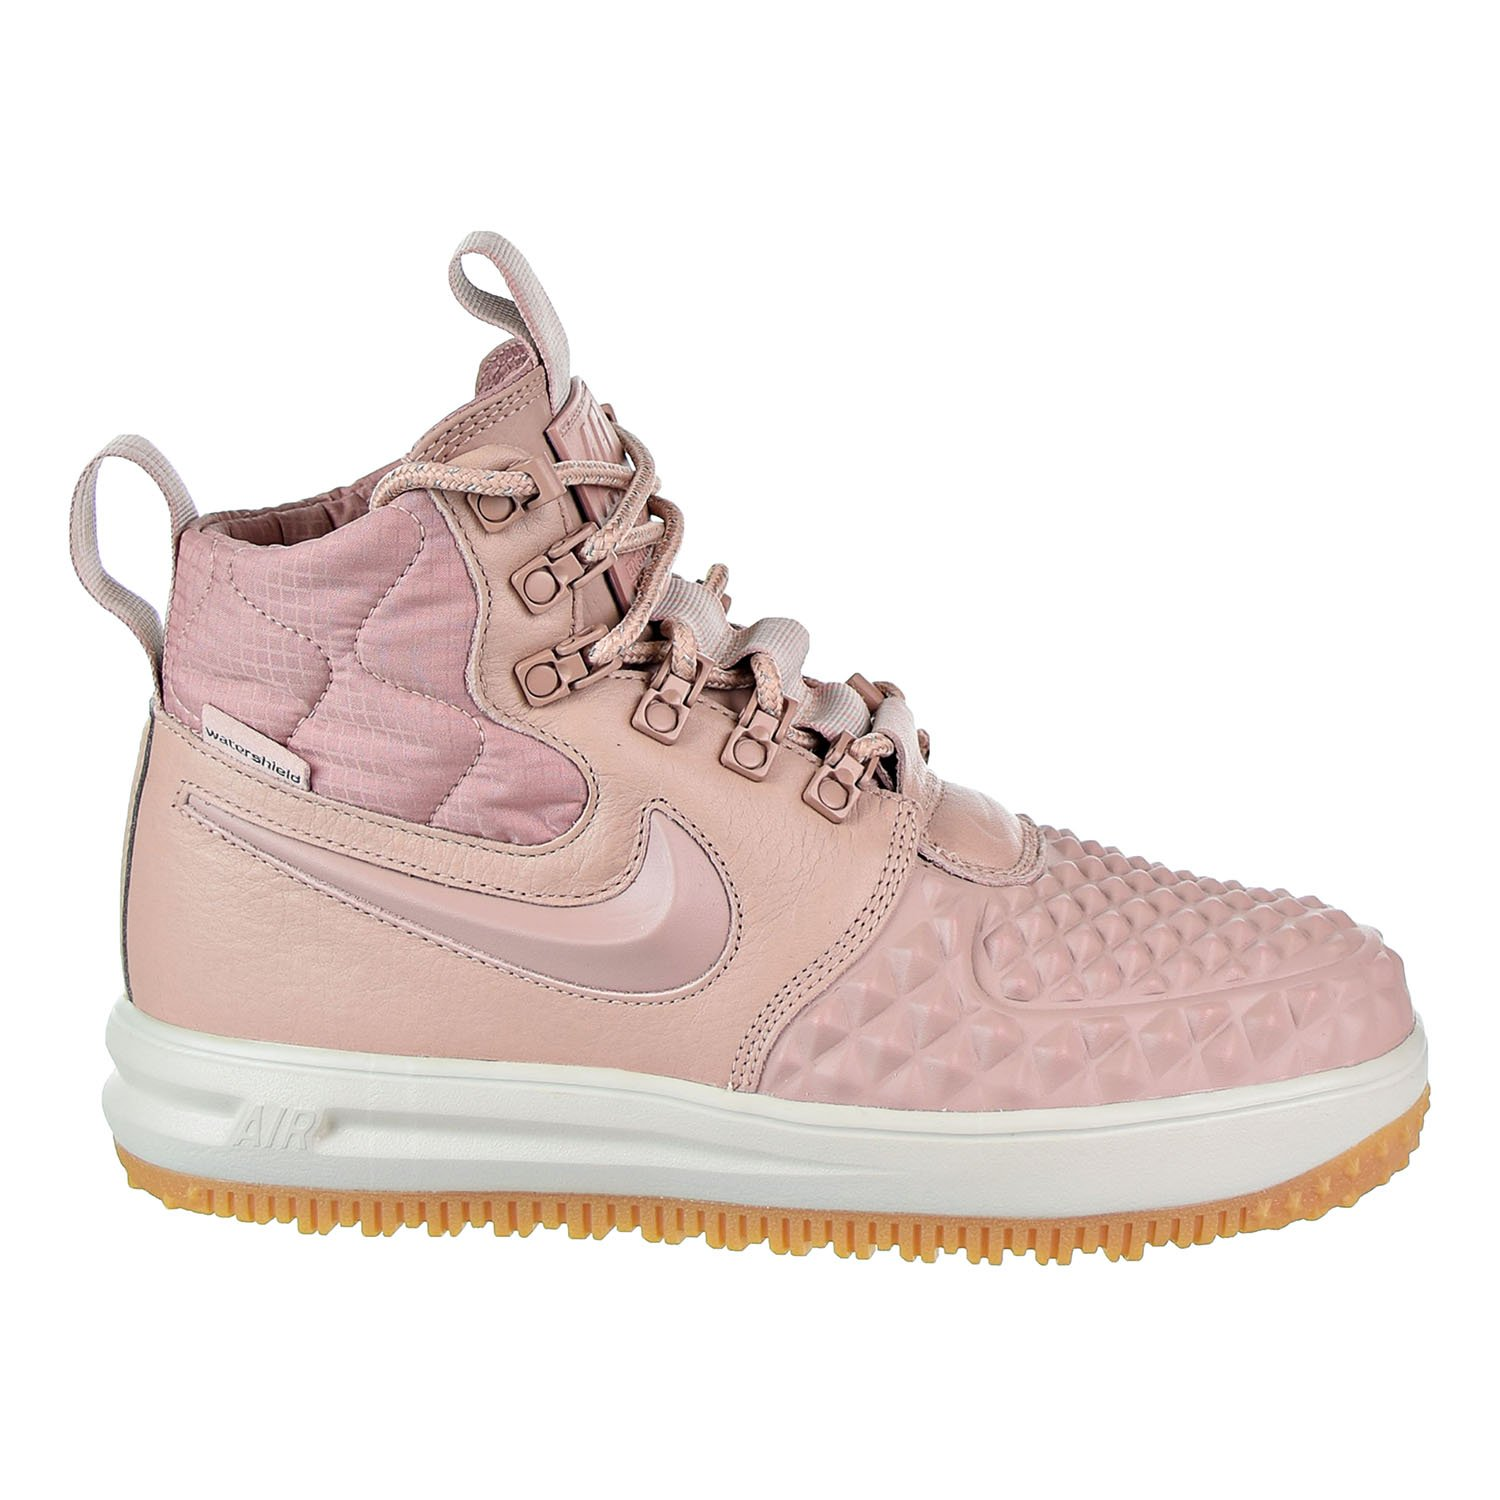 555a12bb3eec Galleon - NIKE Wmns Lunar Force 1 Duckboot Women Casual Shoes - 8.5